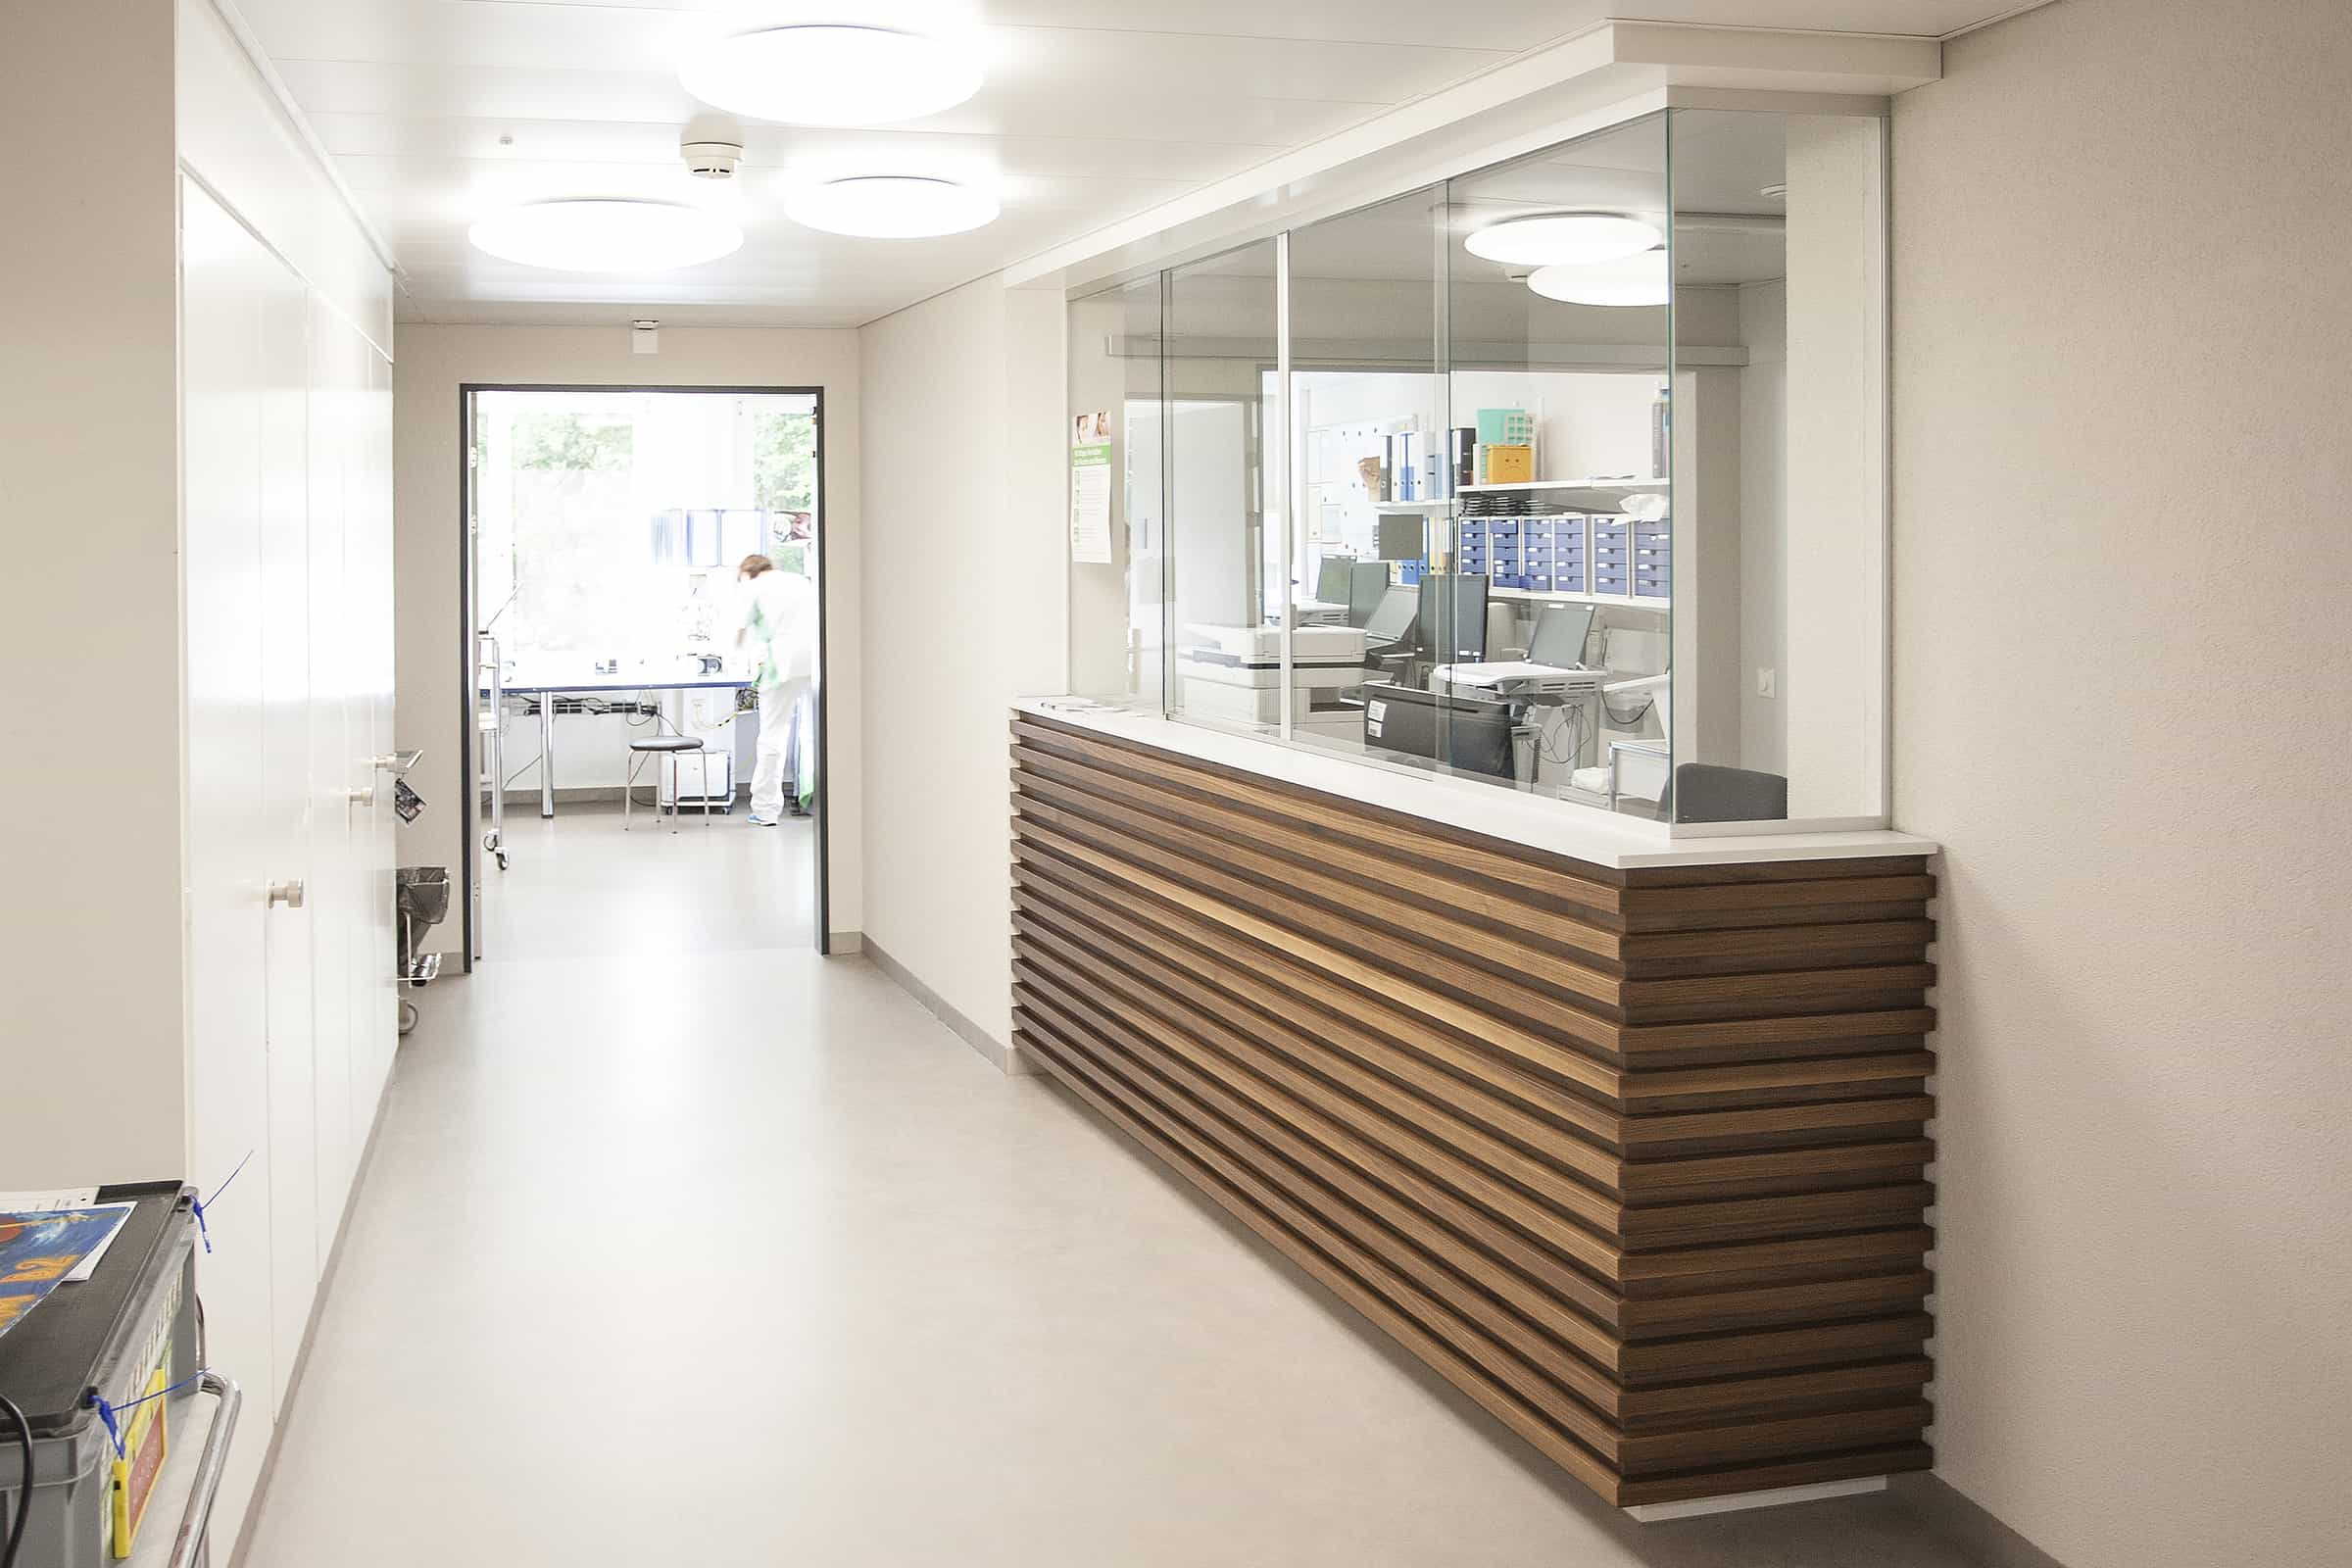 Engeried Spital, Empfang